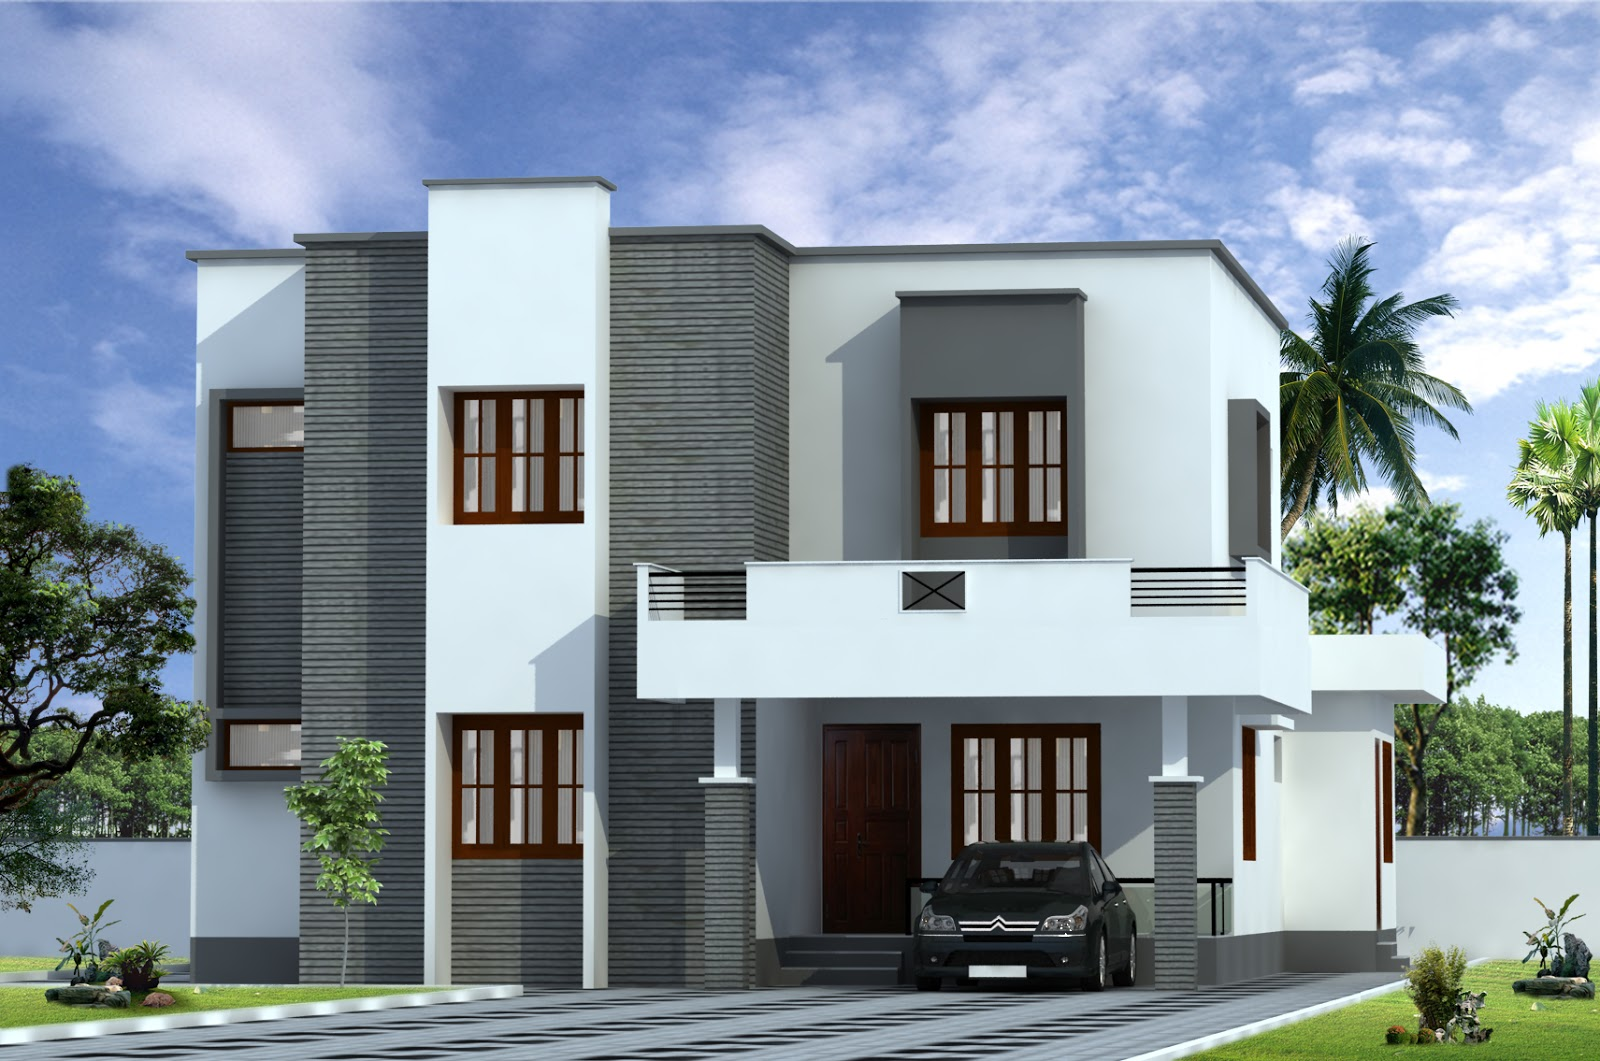 Build a building house designs for Latest building designs and plans